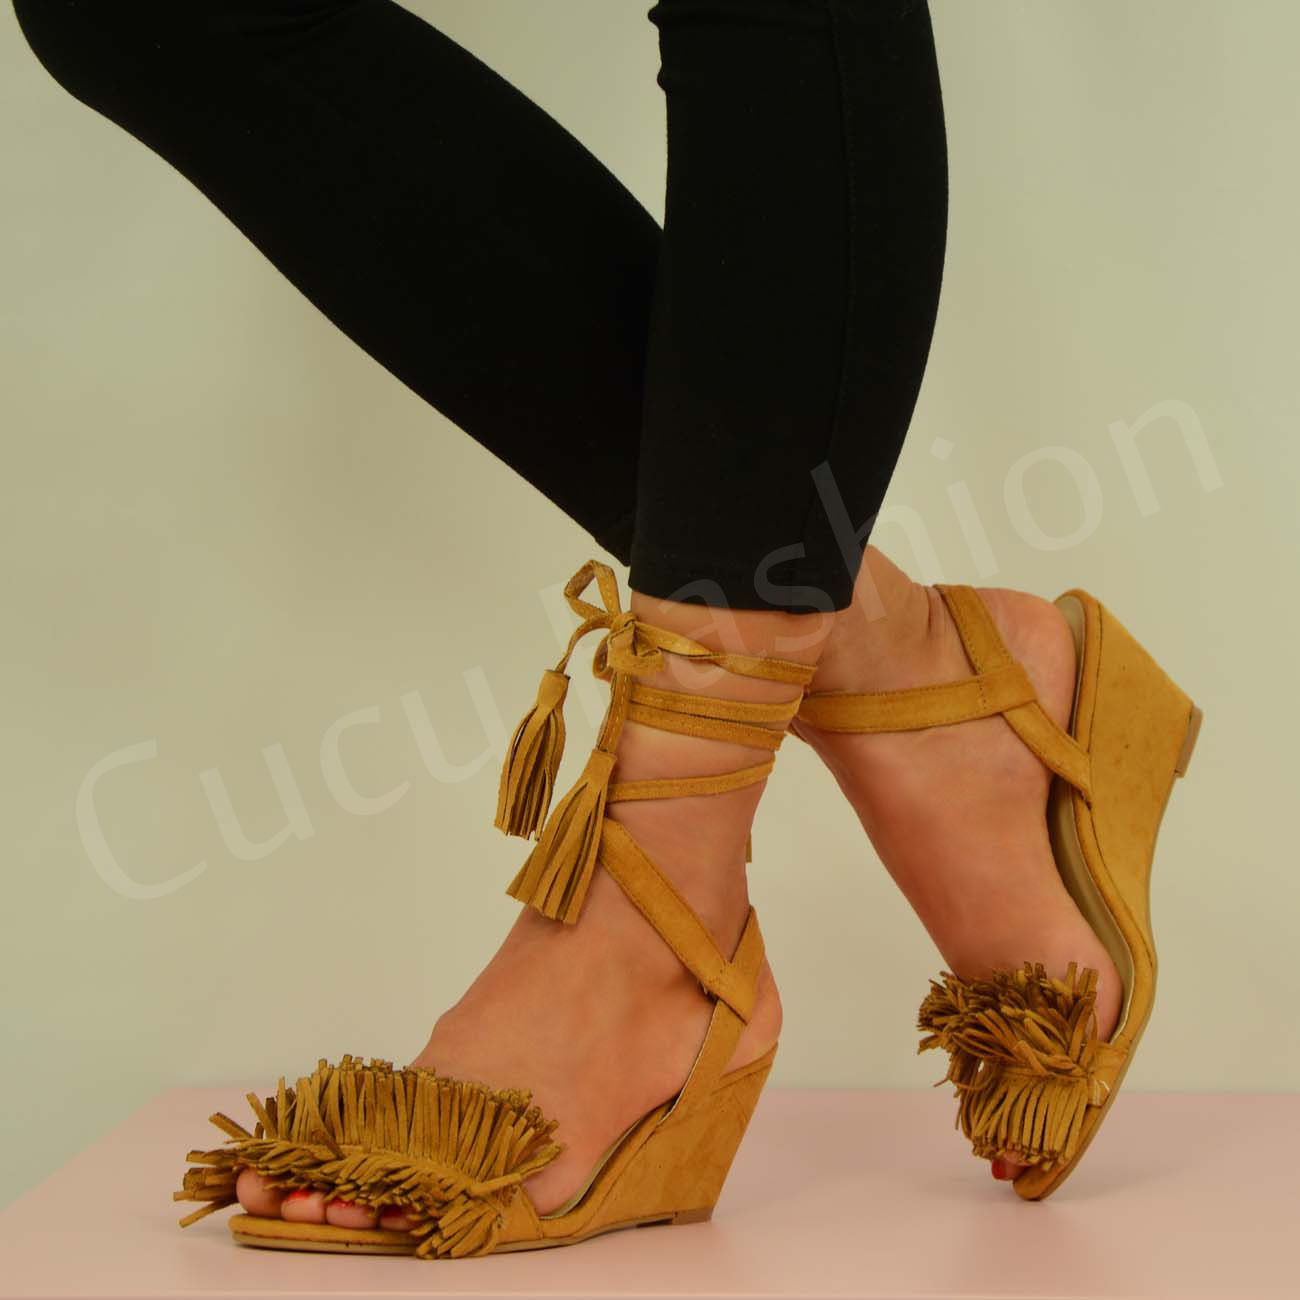 NEW-WOMENS-LACE-UP-WEDGES-LADIES-ANKLE-STRAP-FRINGE-SANDALS-SHOES-SIZE-UK-3-8